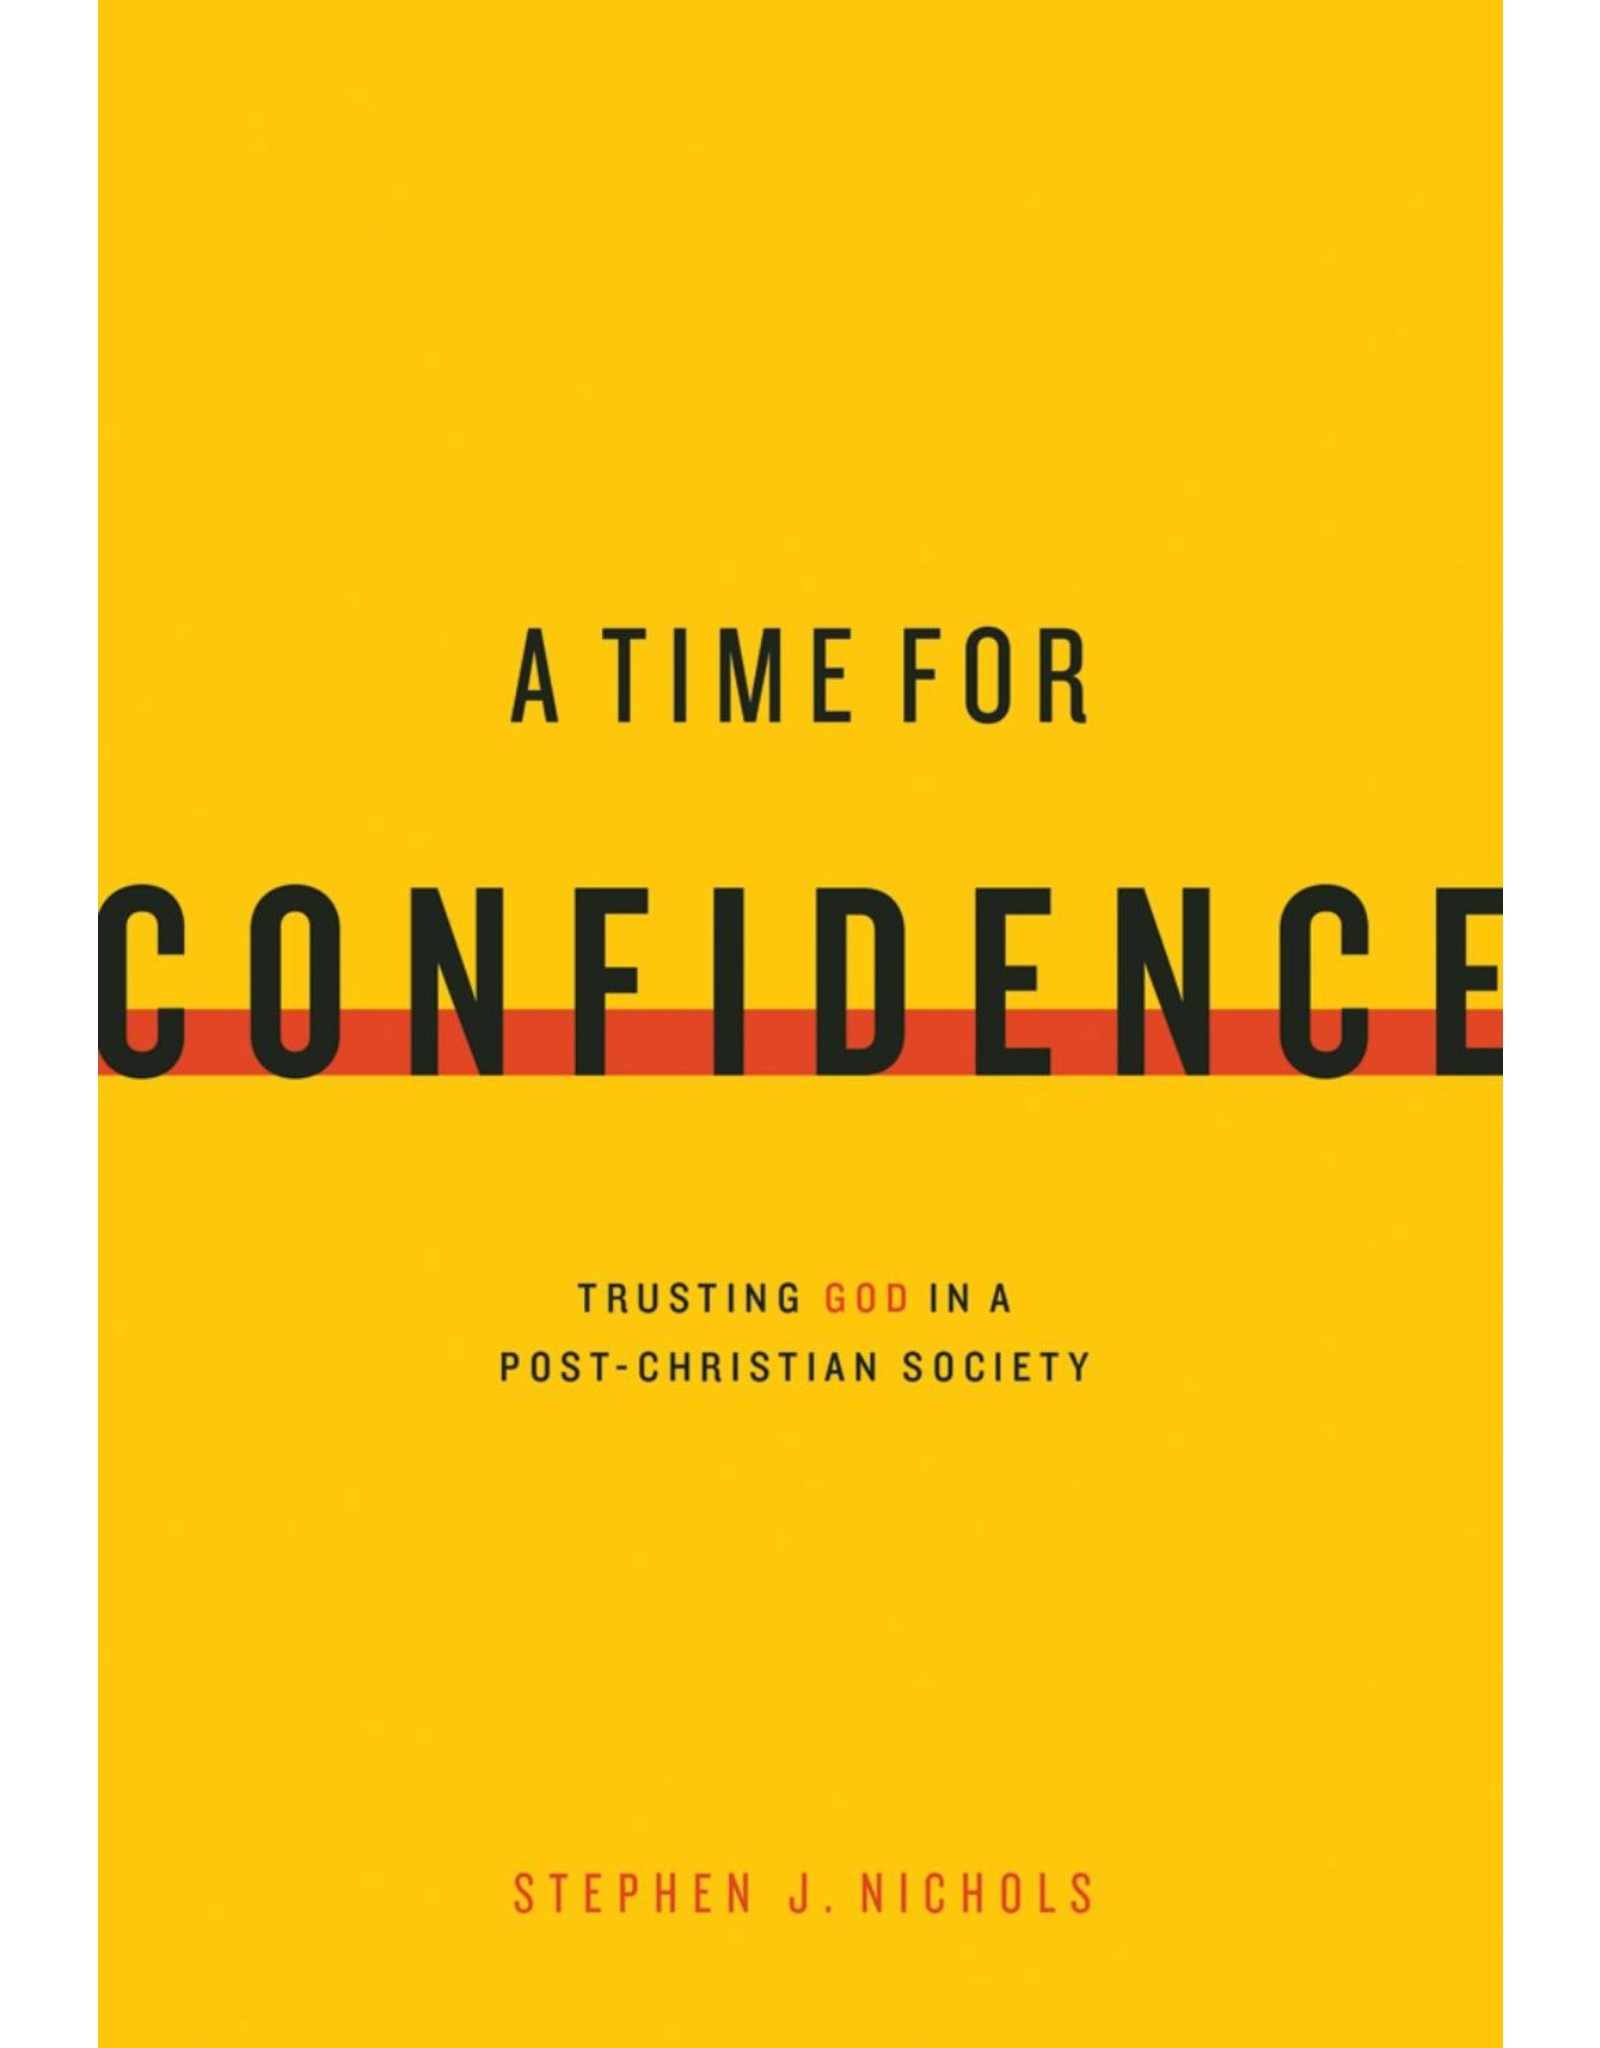 Ligonier / Reformation Trust A Time for Confidence: Trusting God in a Post-Christian Society